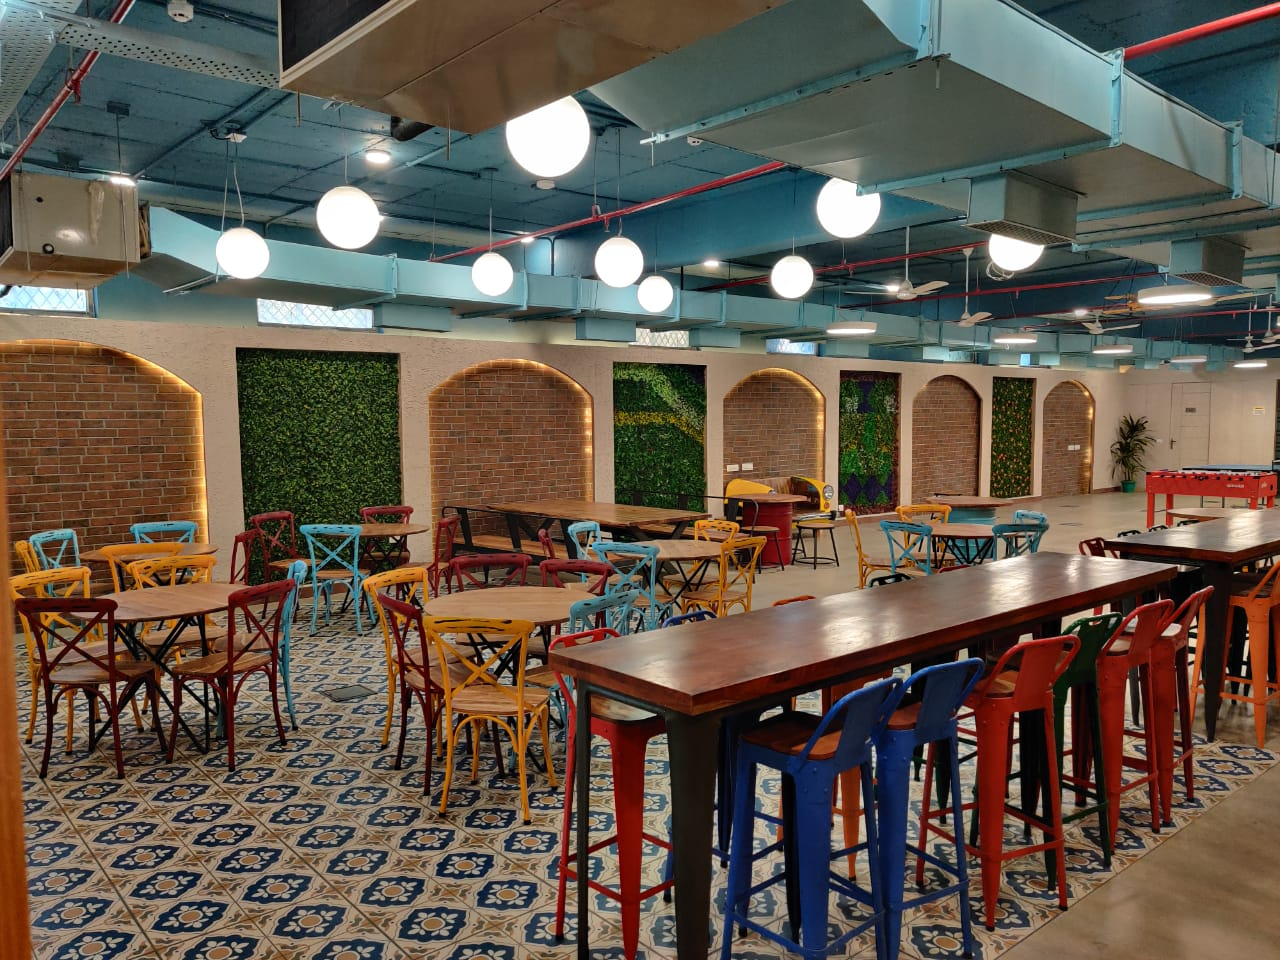 Upcoming Trends in Coworking spaces